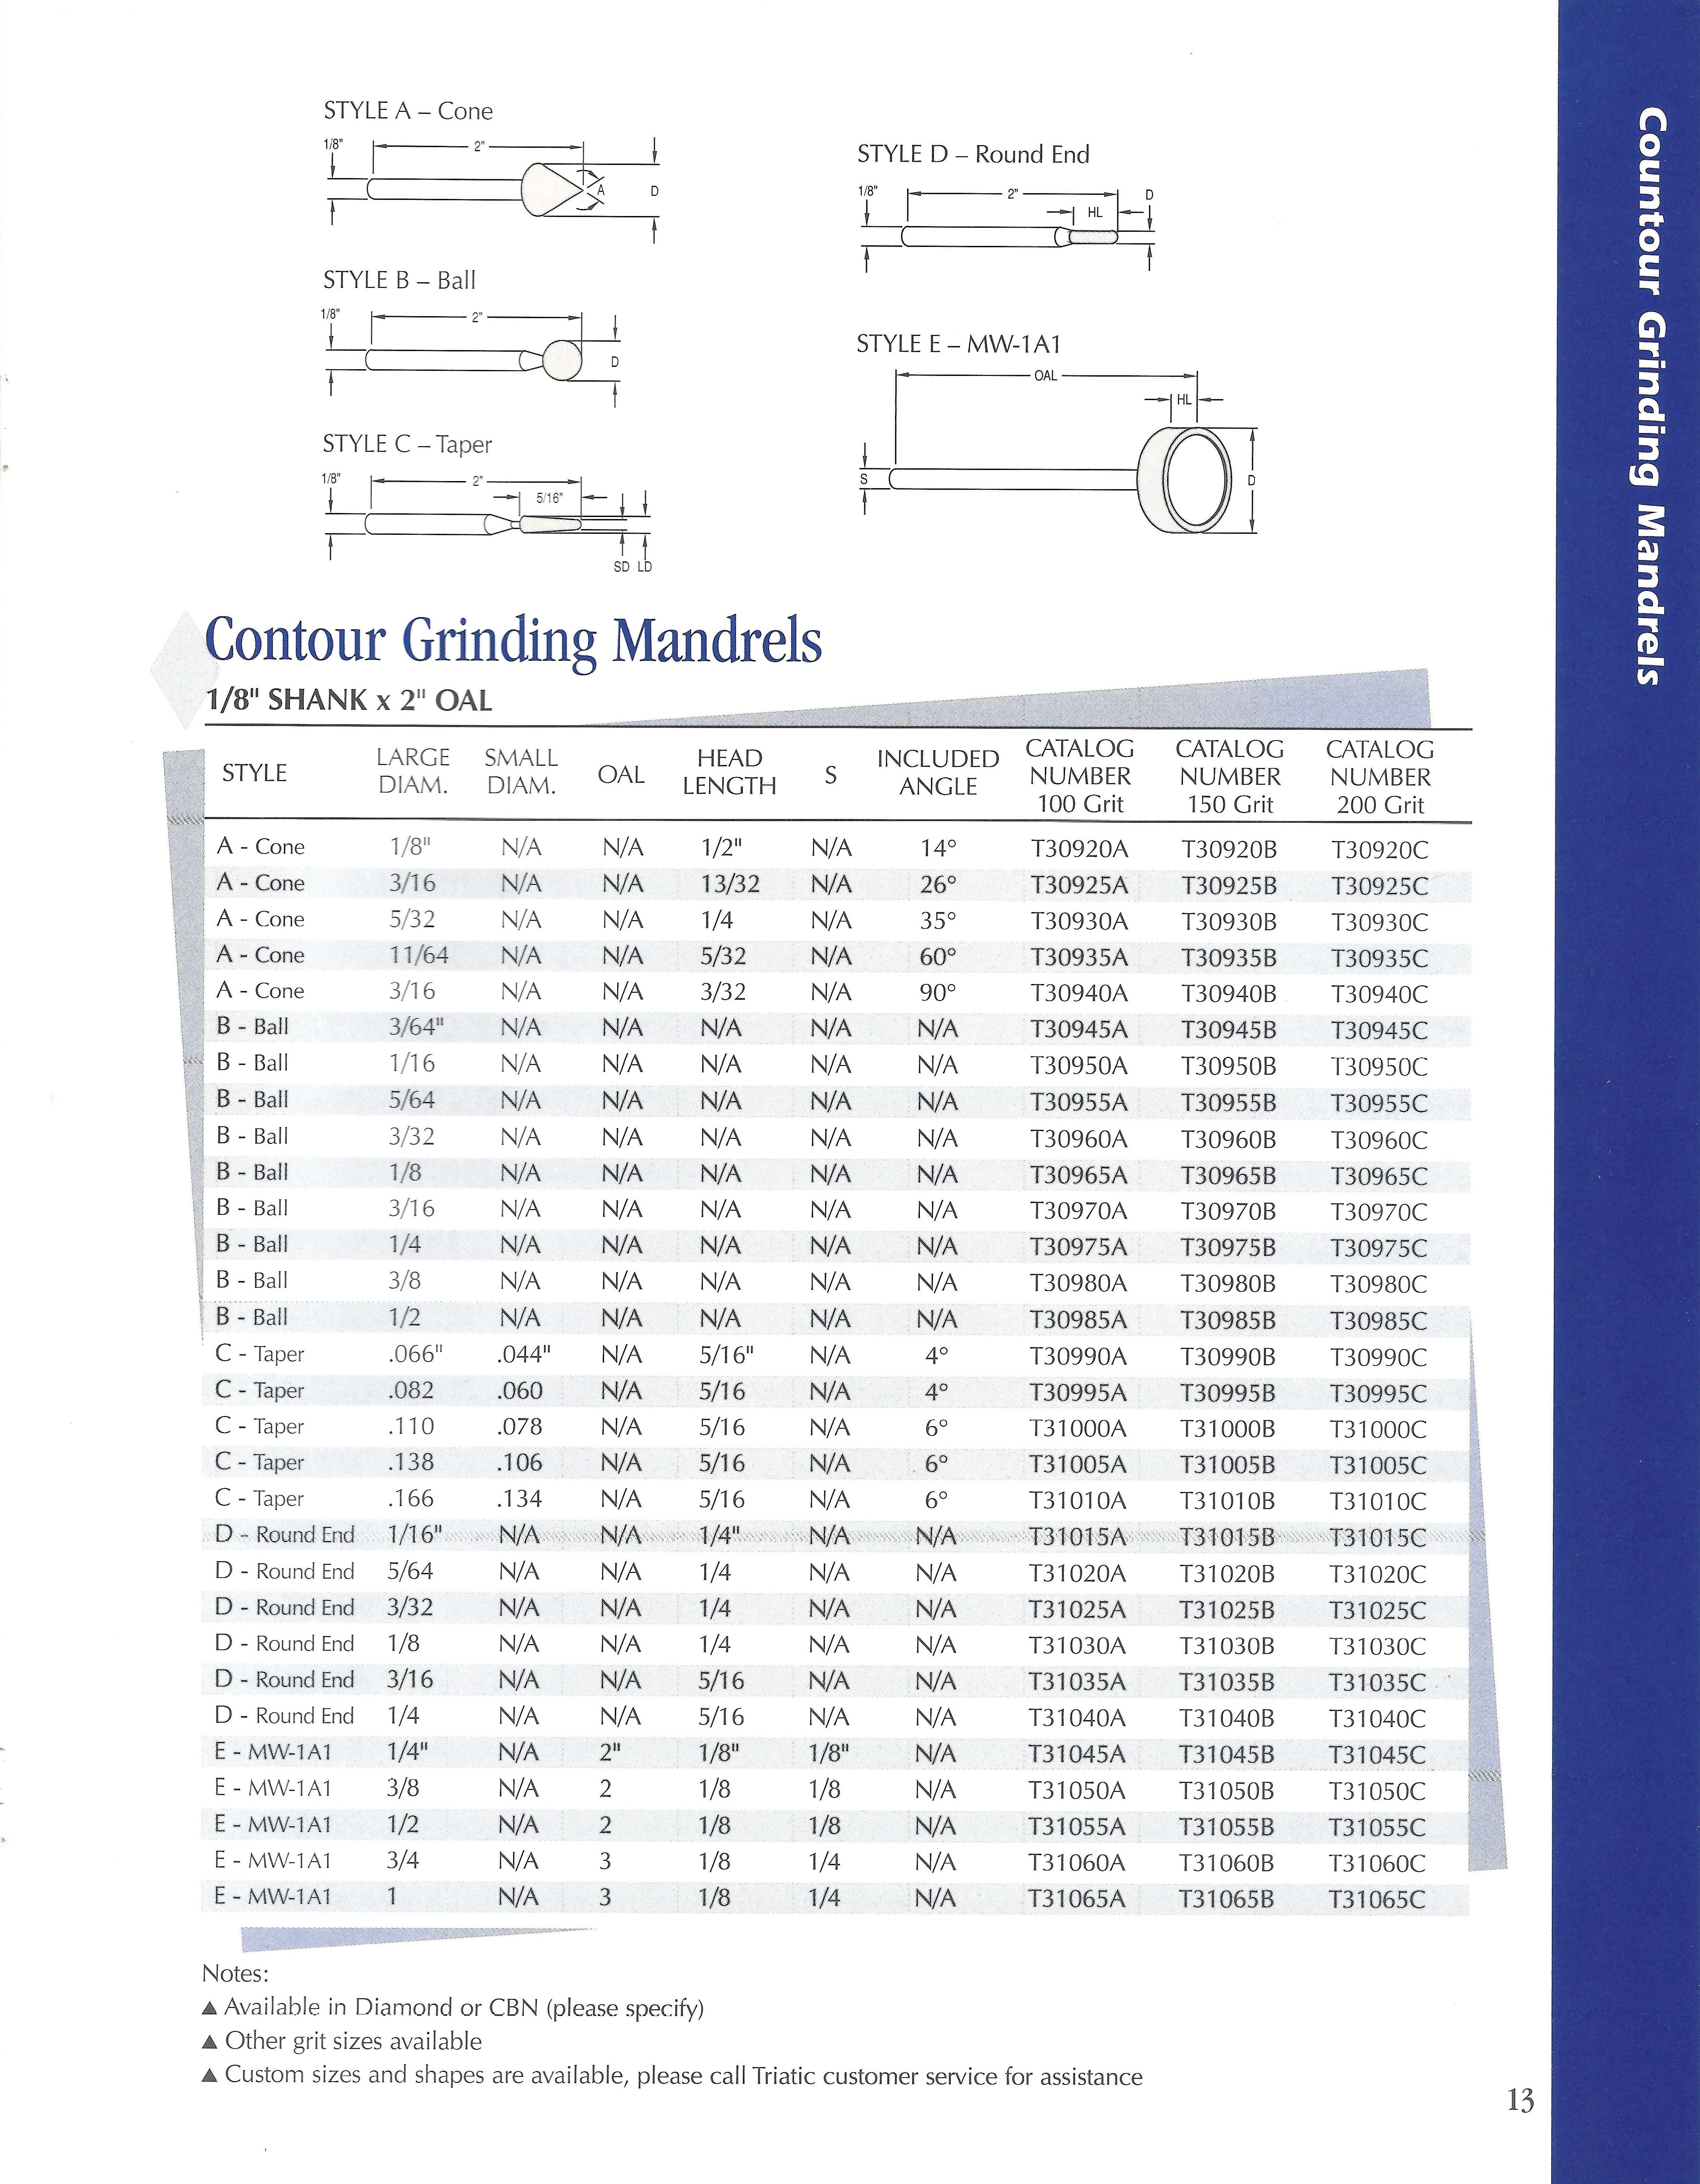 catalog-in-pdf-combined-page-13-image-0001.jpg